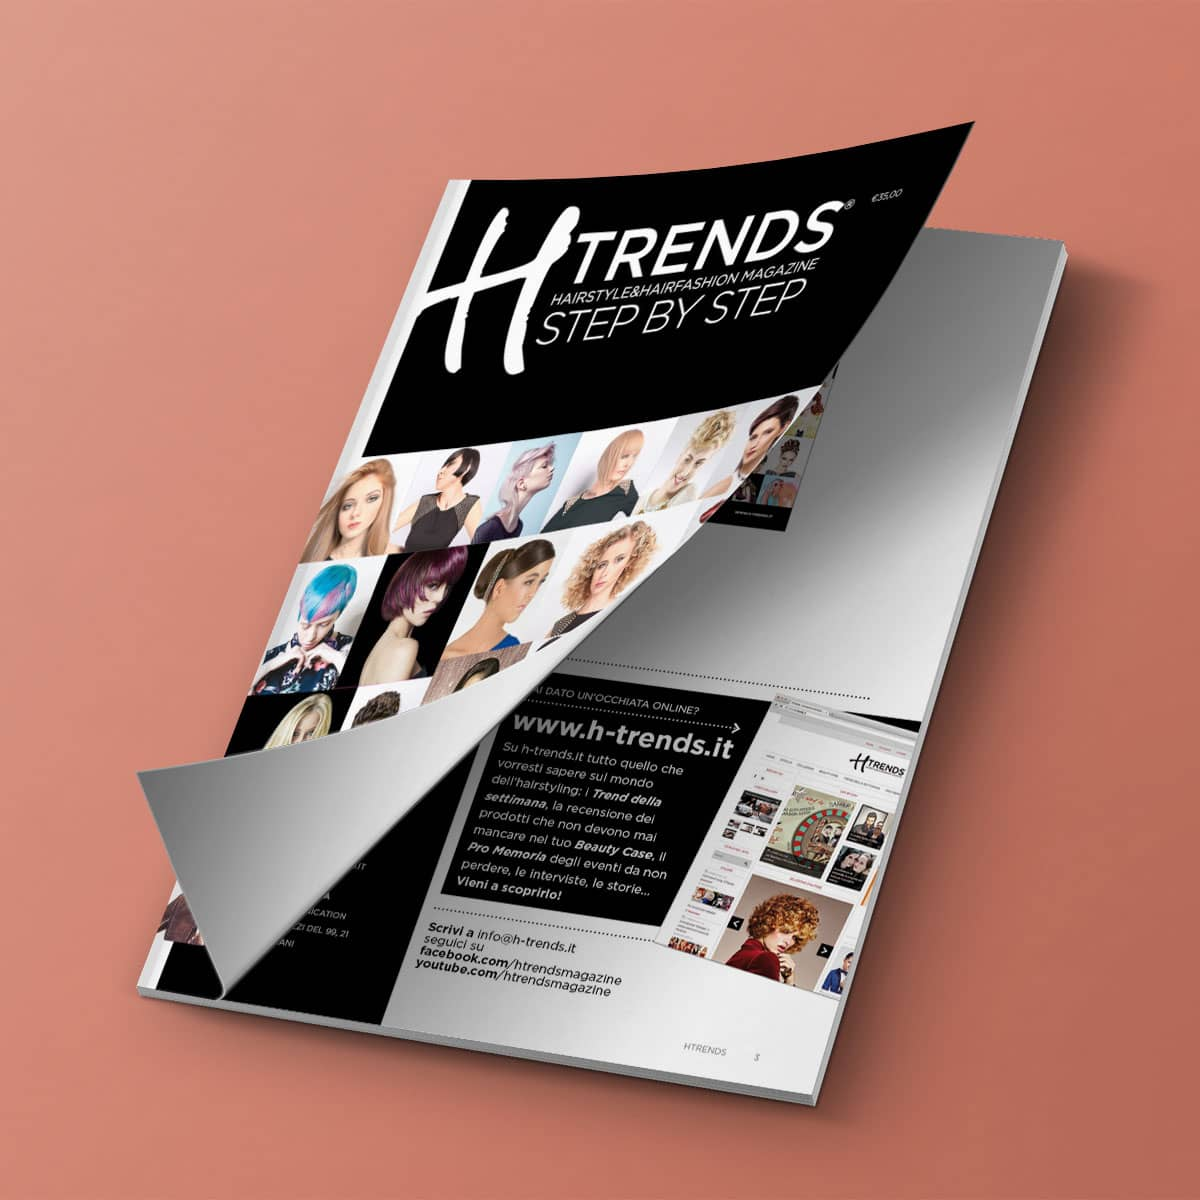 HTrends-Step-by-step-black-product-cover